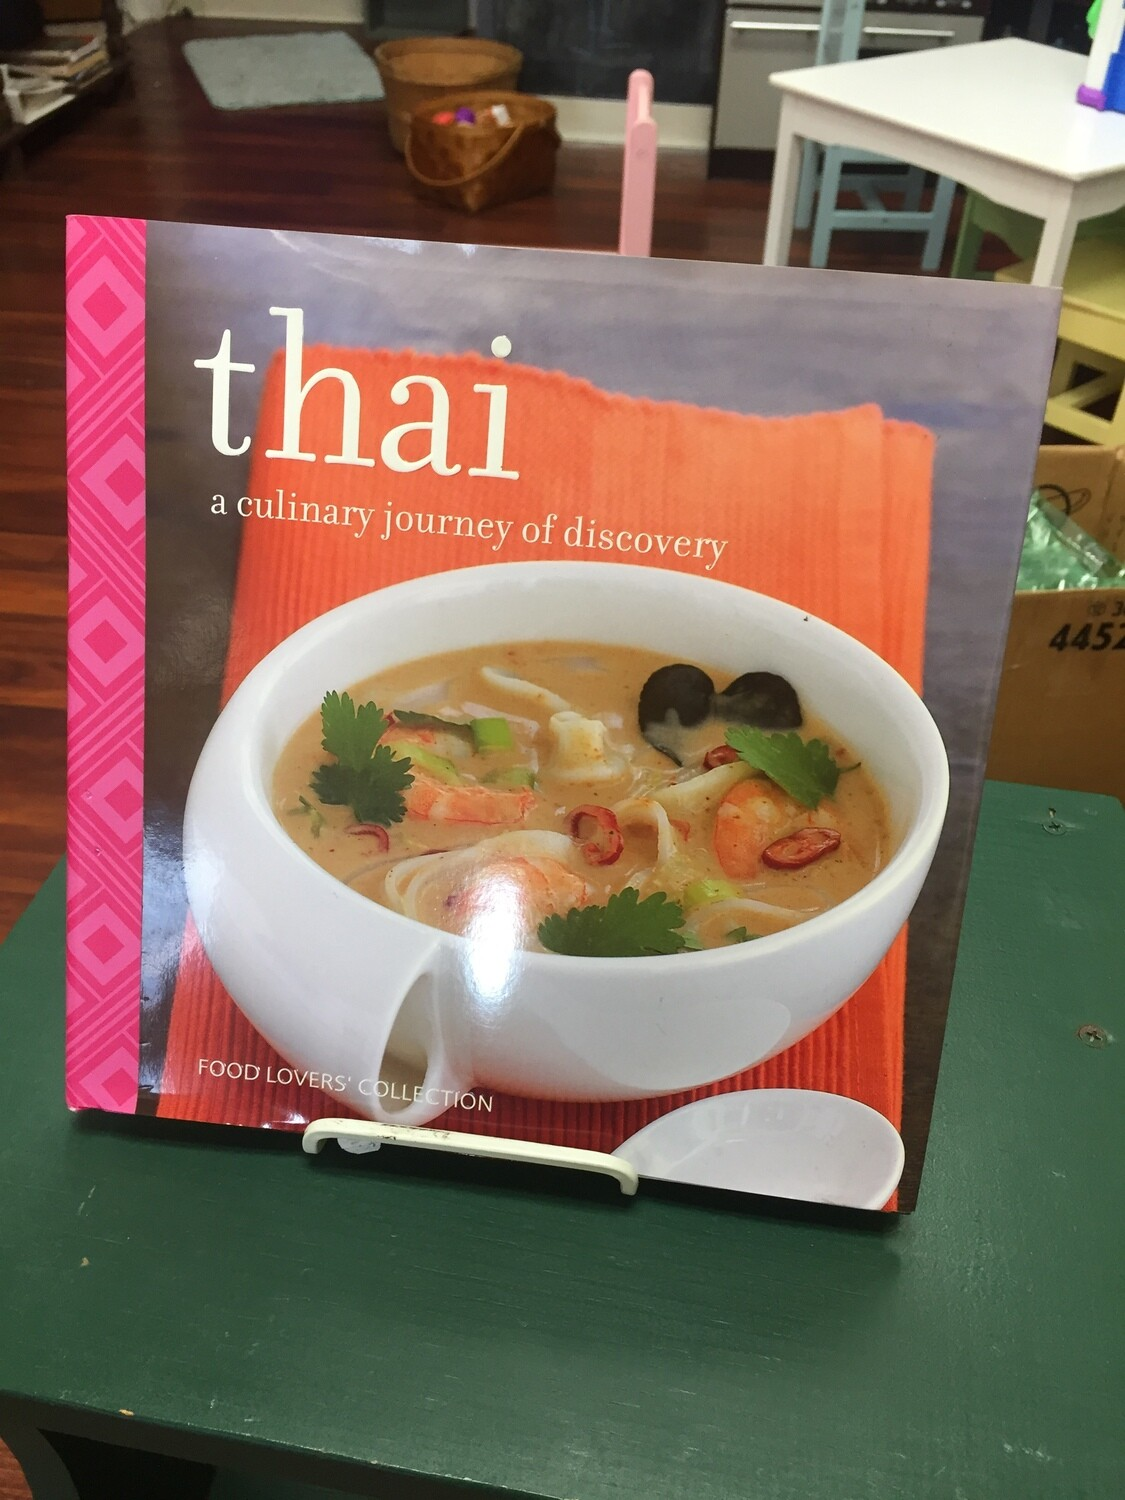 Thai - A culinary journey of Discovery